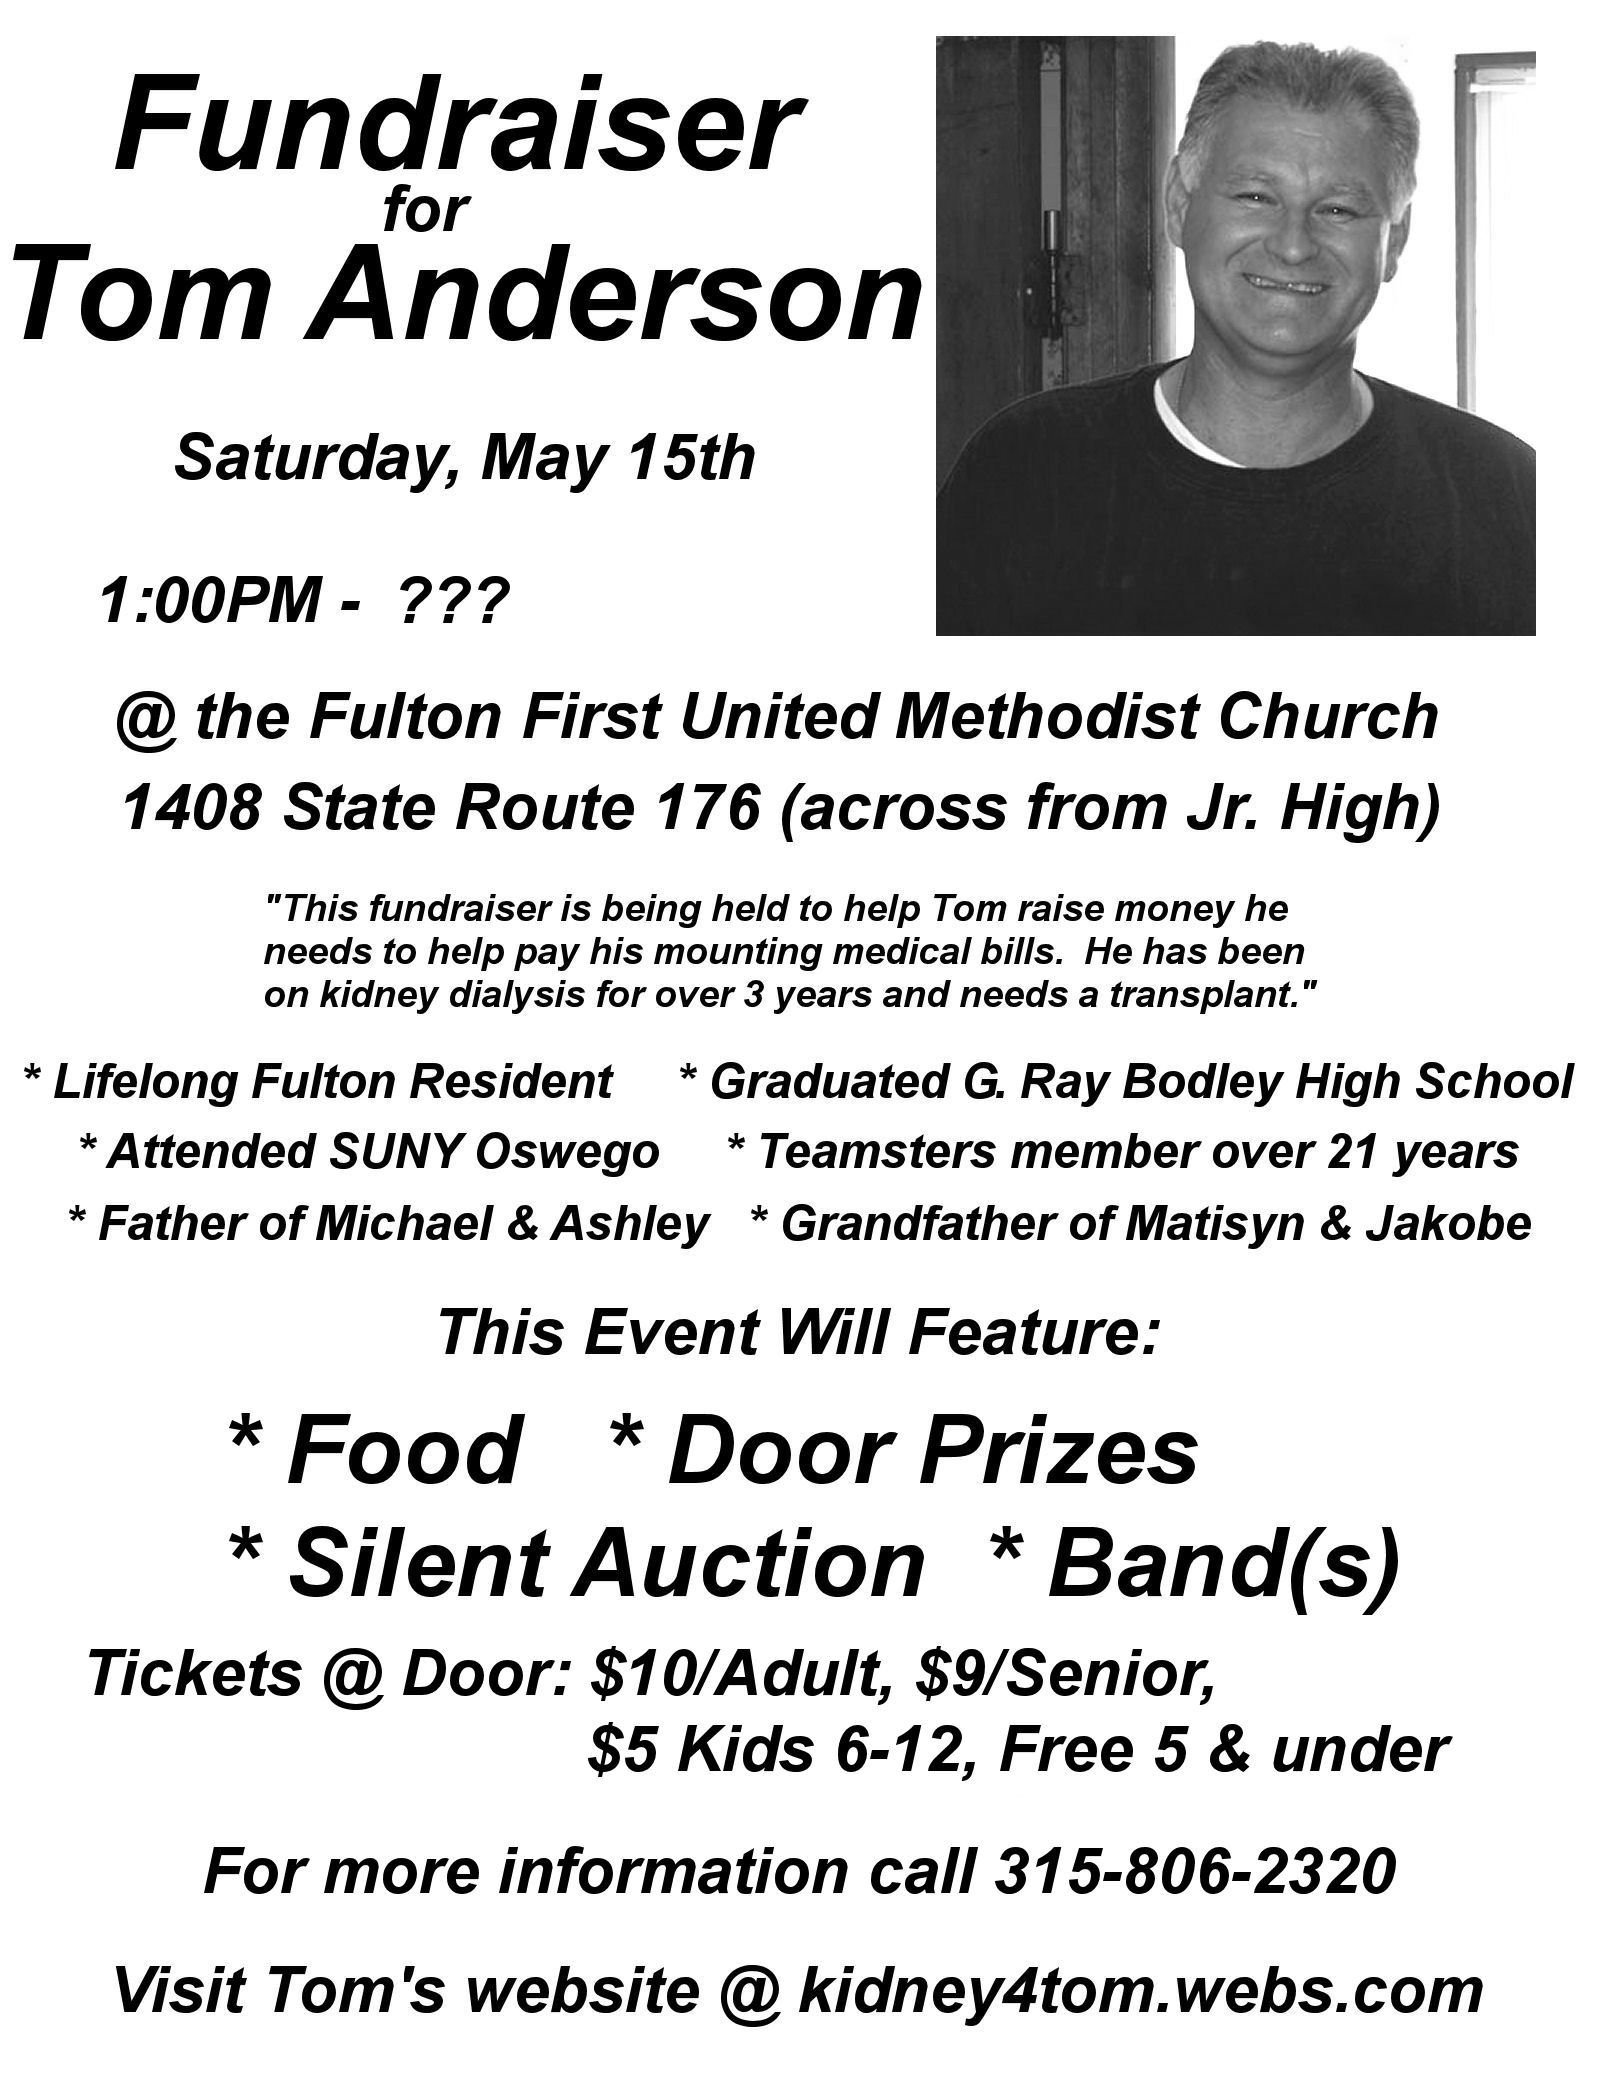 10 Attractive Fundraising Ideas For Medical Expenses awareness day medical expense fundraiser for tom anderson oswego 2020